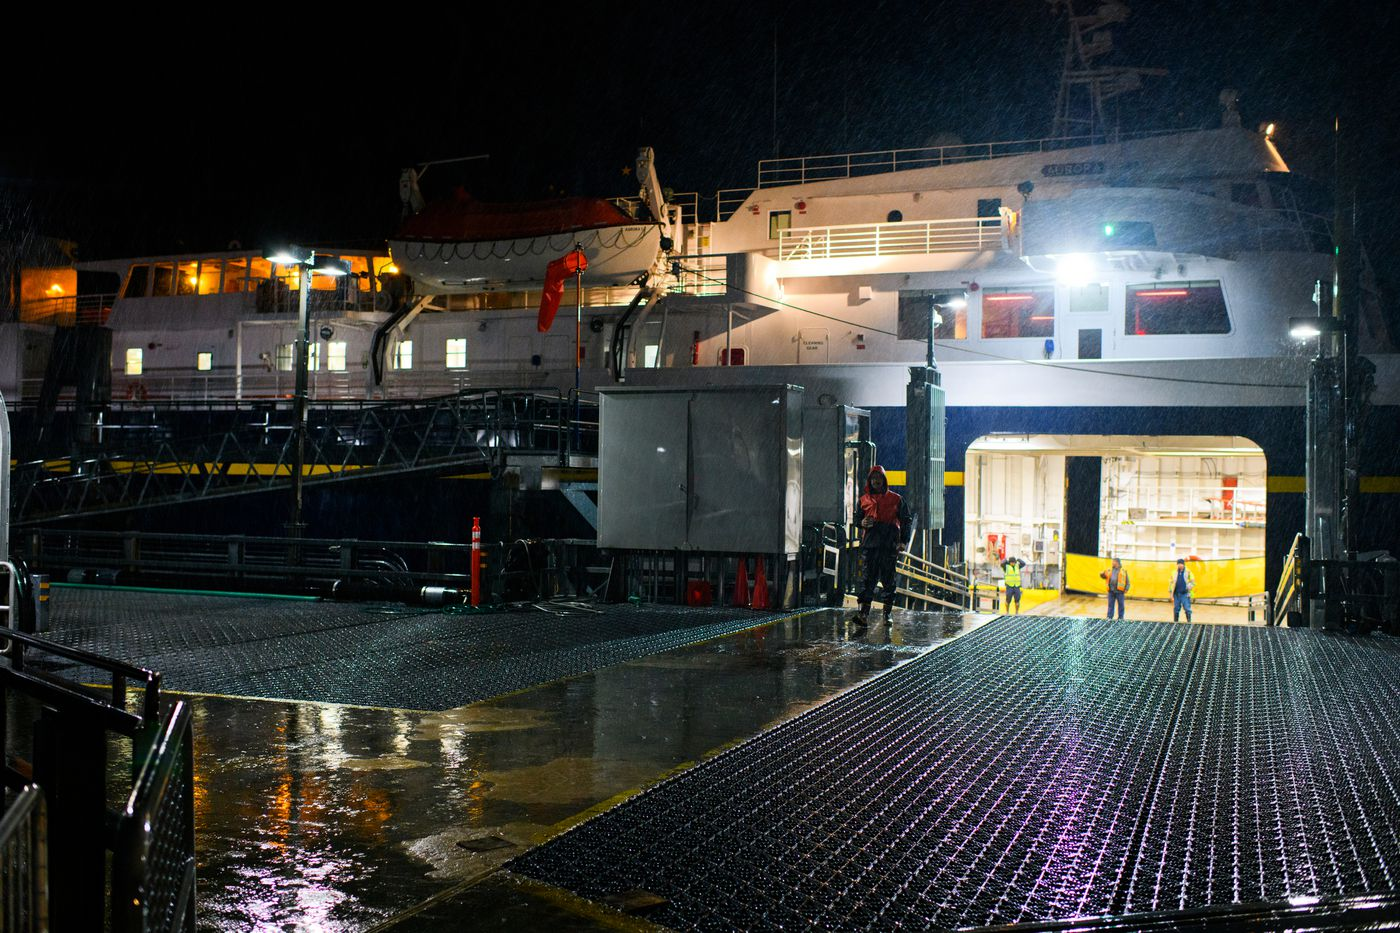 Alaska Marine Highway employees prepare to load vehicles and passengers on Aurora before a 5 a.m. departure from Cordova on September 18, 2019. (Marc Lester / ADN)